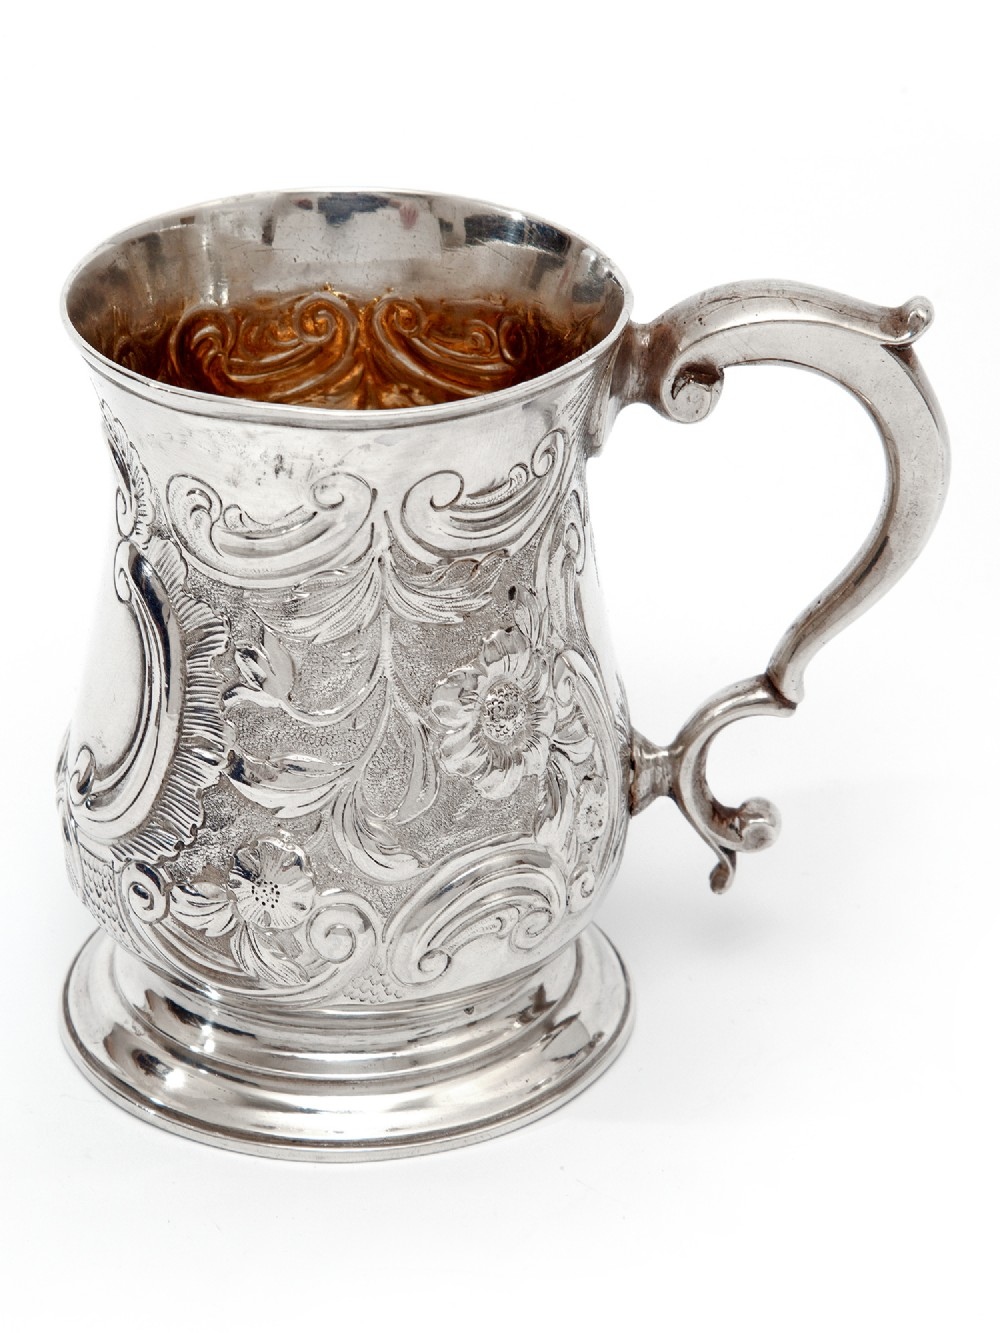 george iii silver baluster shape christening mug with a cast scroll handle